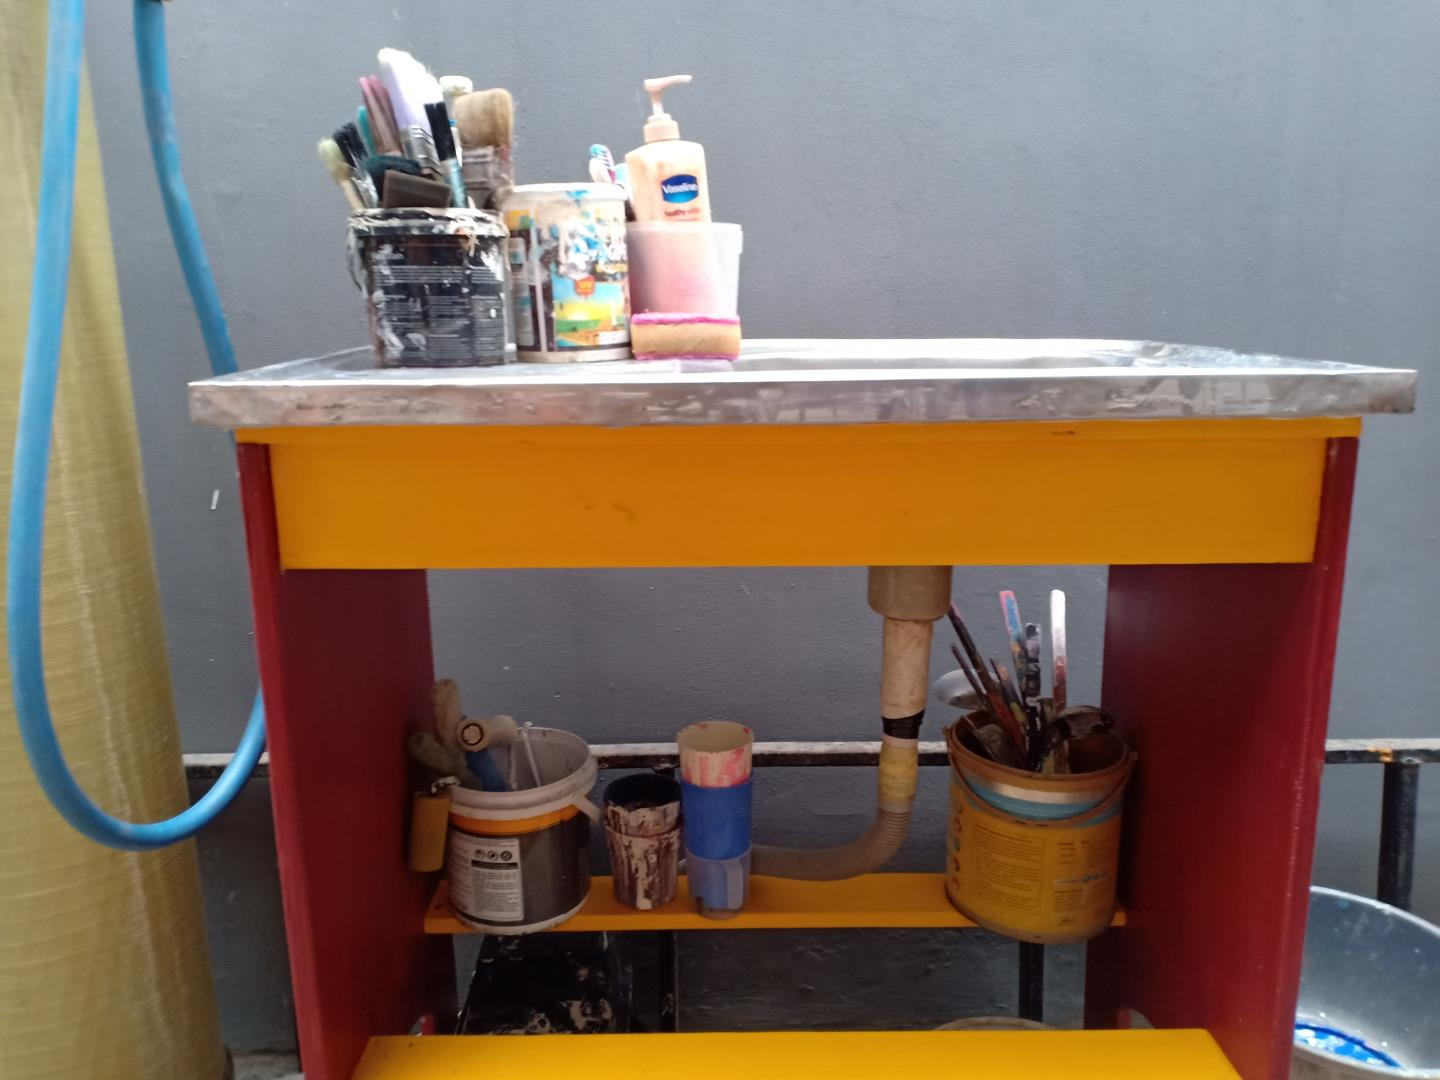 I Made Portable Sink (cheap & portable) 4 H3NDY